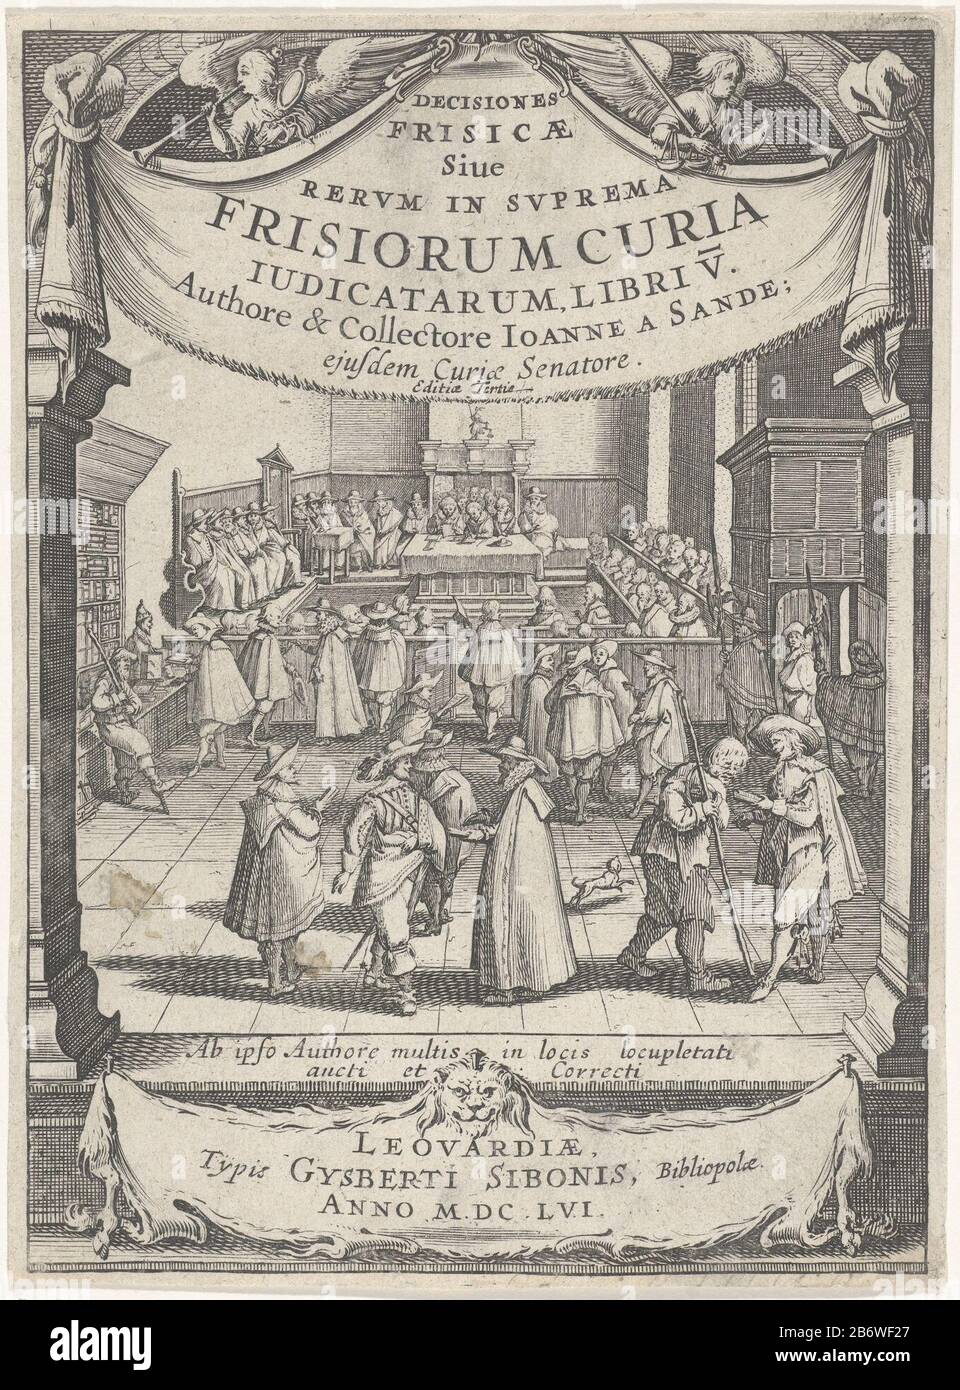 Interieur van een rechtbank Titelpagina voor Johan van den Sande, Decisiones Frisicae siue Rerum in suprema Frisiorum curia judicatarum, libri V, 1656 Many male figures in an interior of a court. On either side of the show two columns with there over the title. Above the title two angels with the attributes Where: of justice and a mirror, respectively scales and sword. Among the performance, a spread lion's skin ha thereon the impressum. Manufacturer : print maker: J. Herman Publisher: Gysberti Sibonis (indicated on object) writer: Johan, van den Sande (indicated on object) Place manufacture: Stock Photo